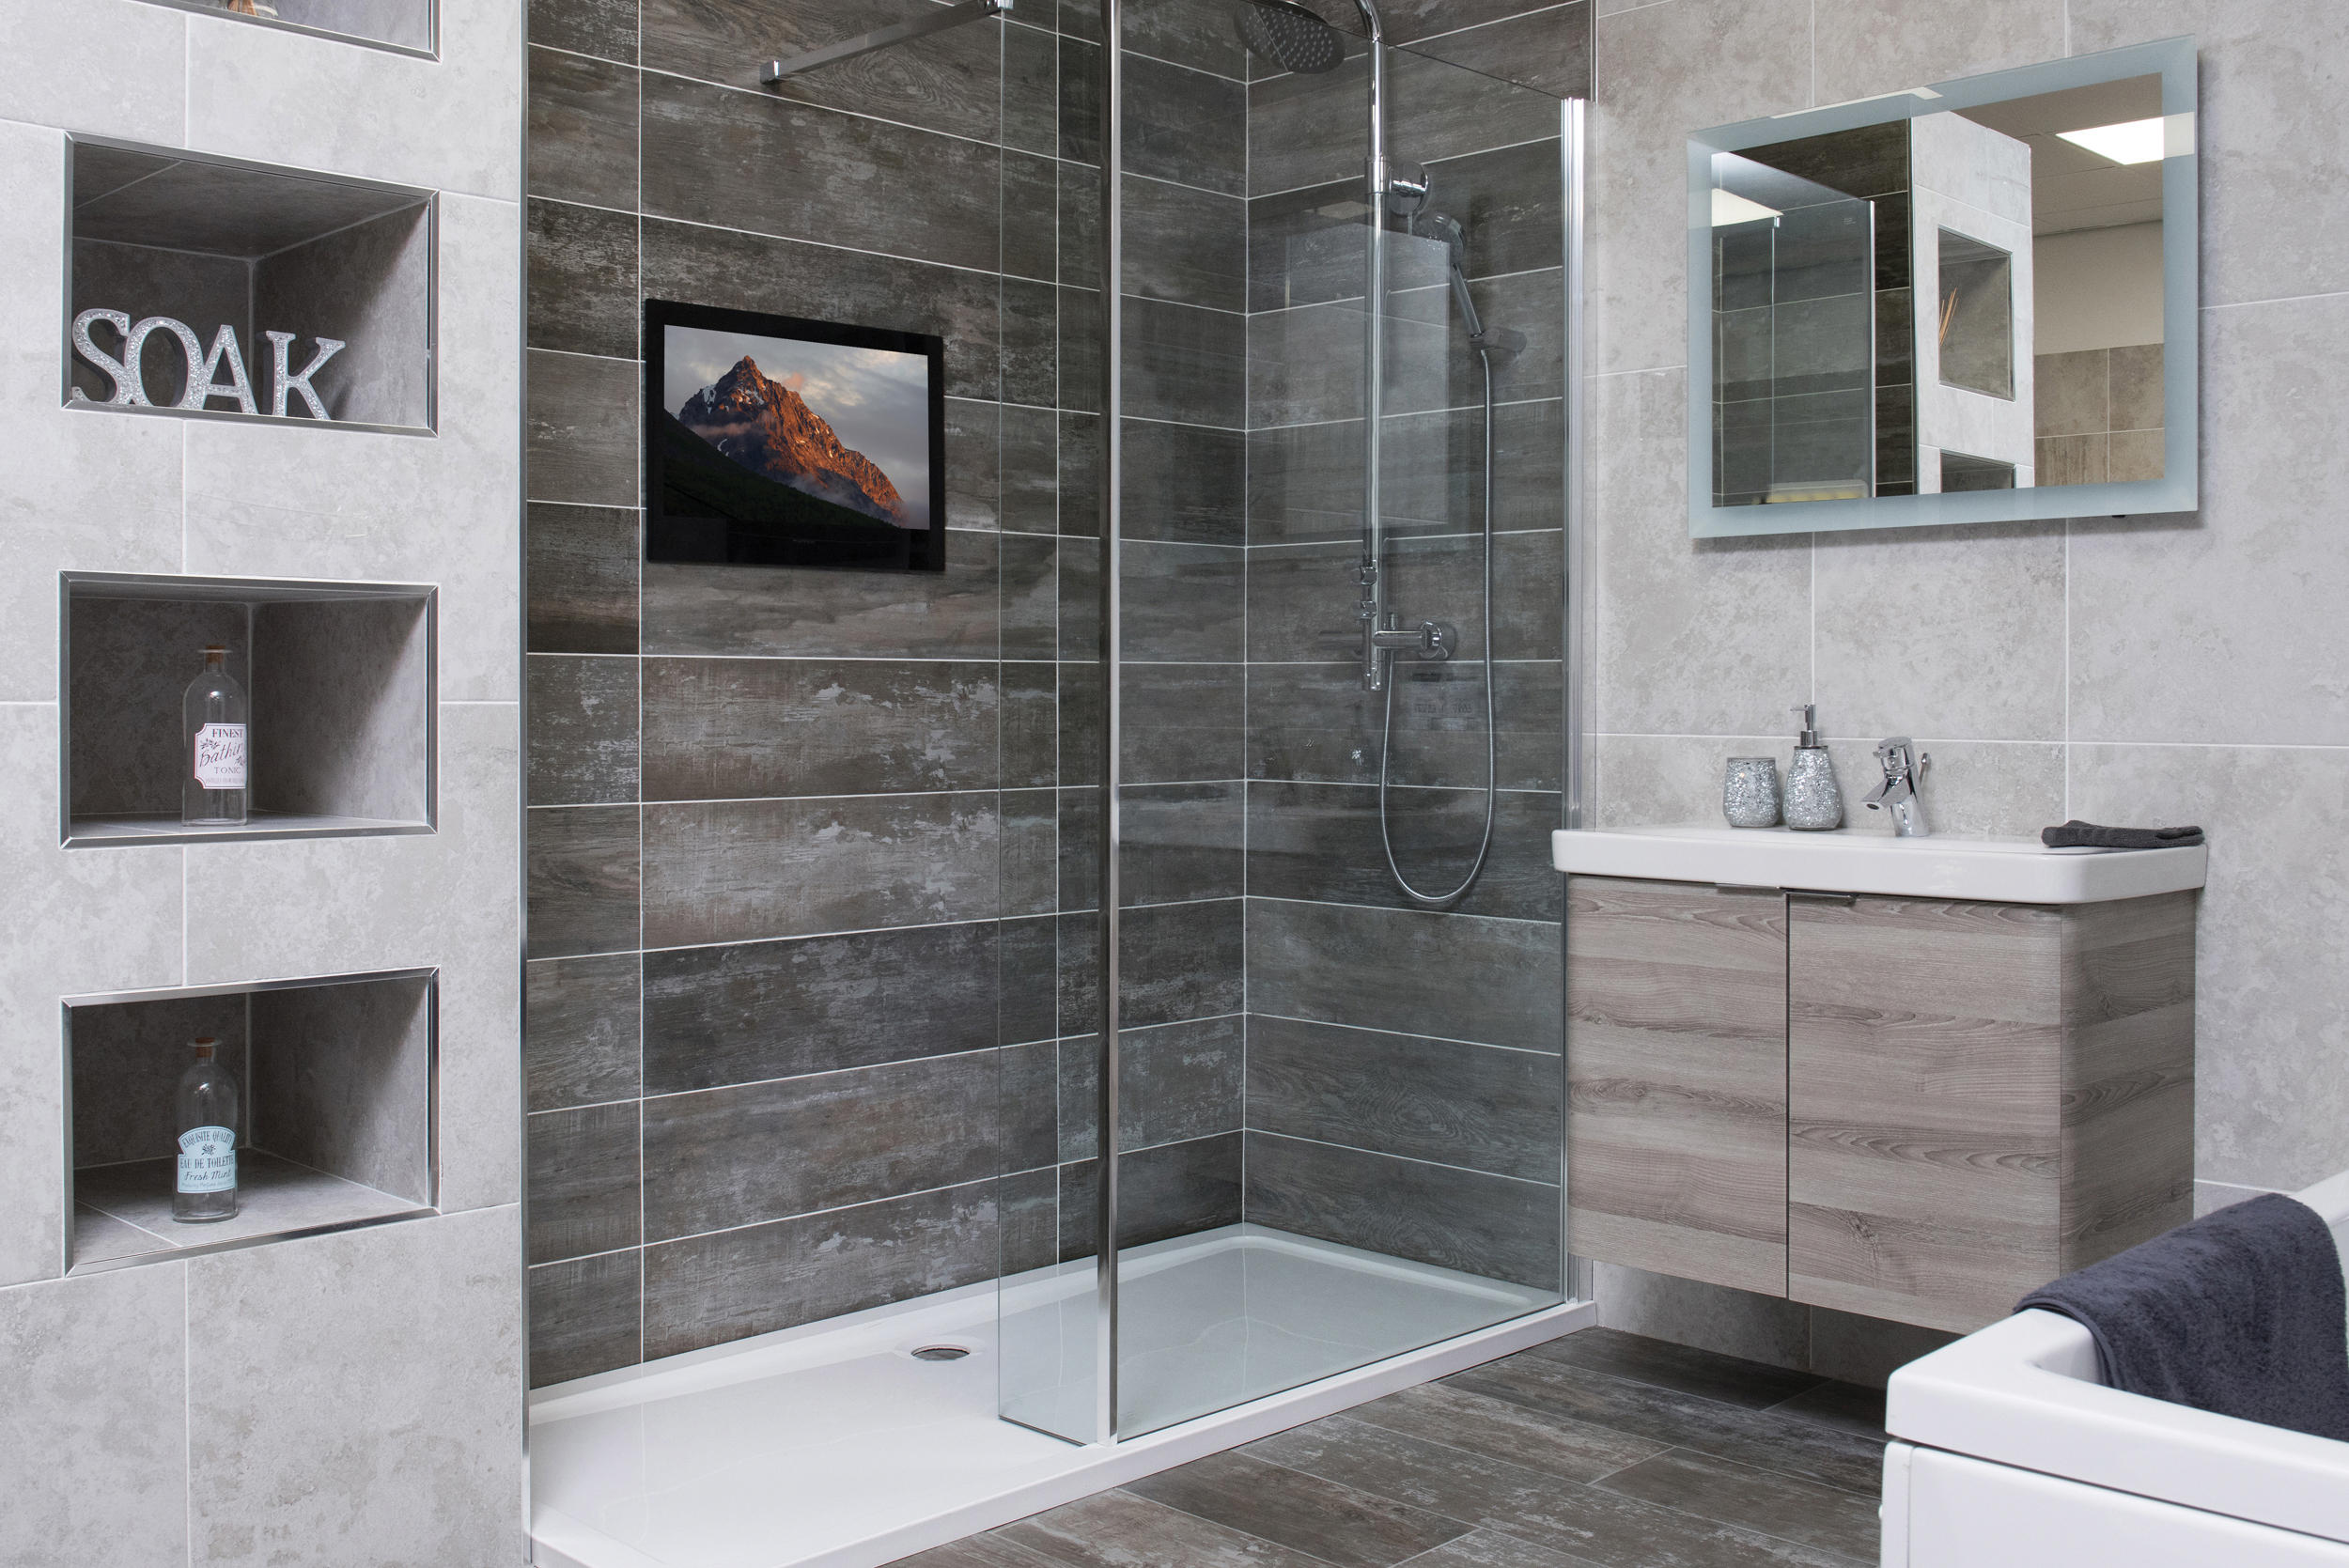 Image result for bathroom TV mirror